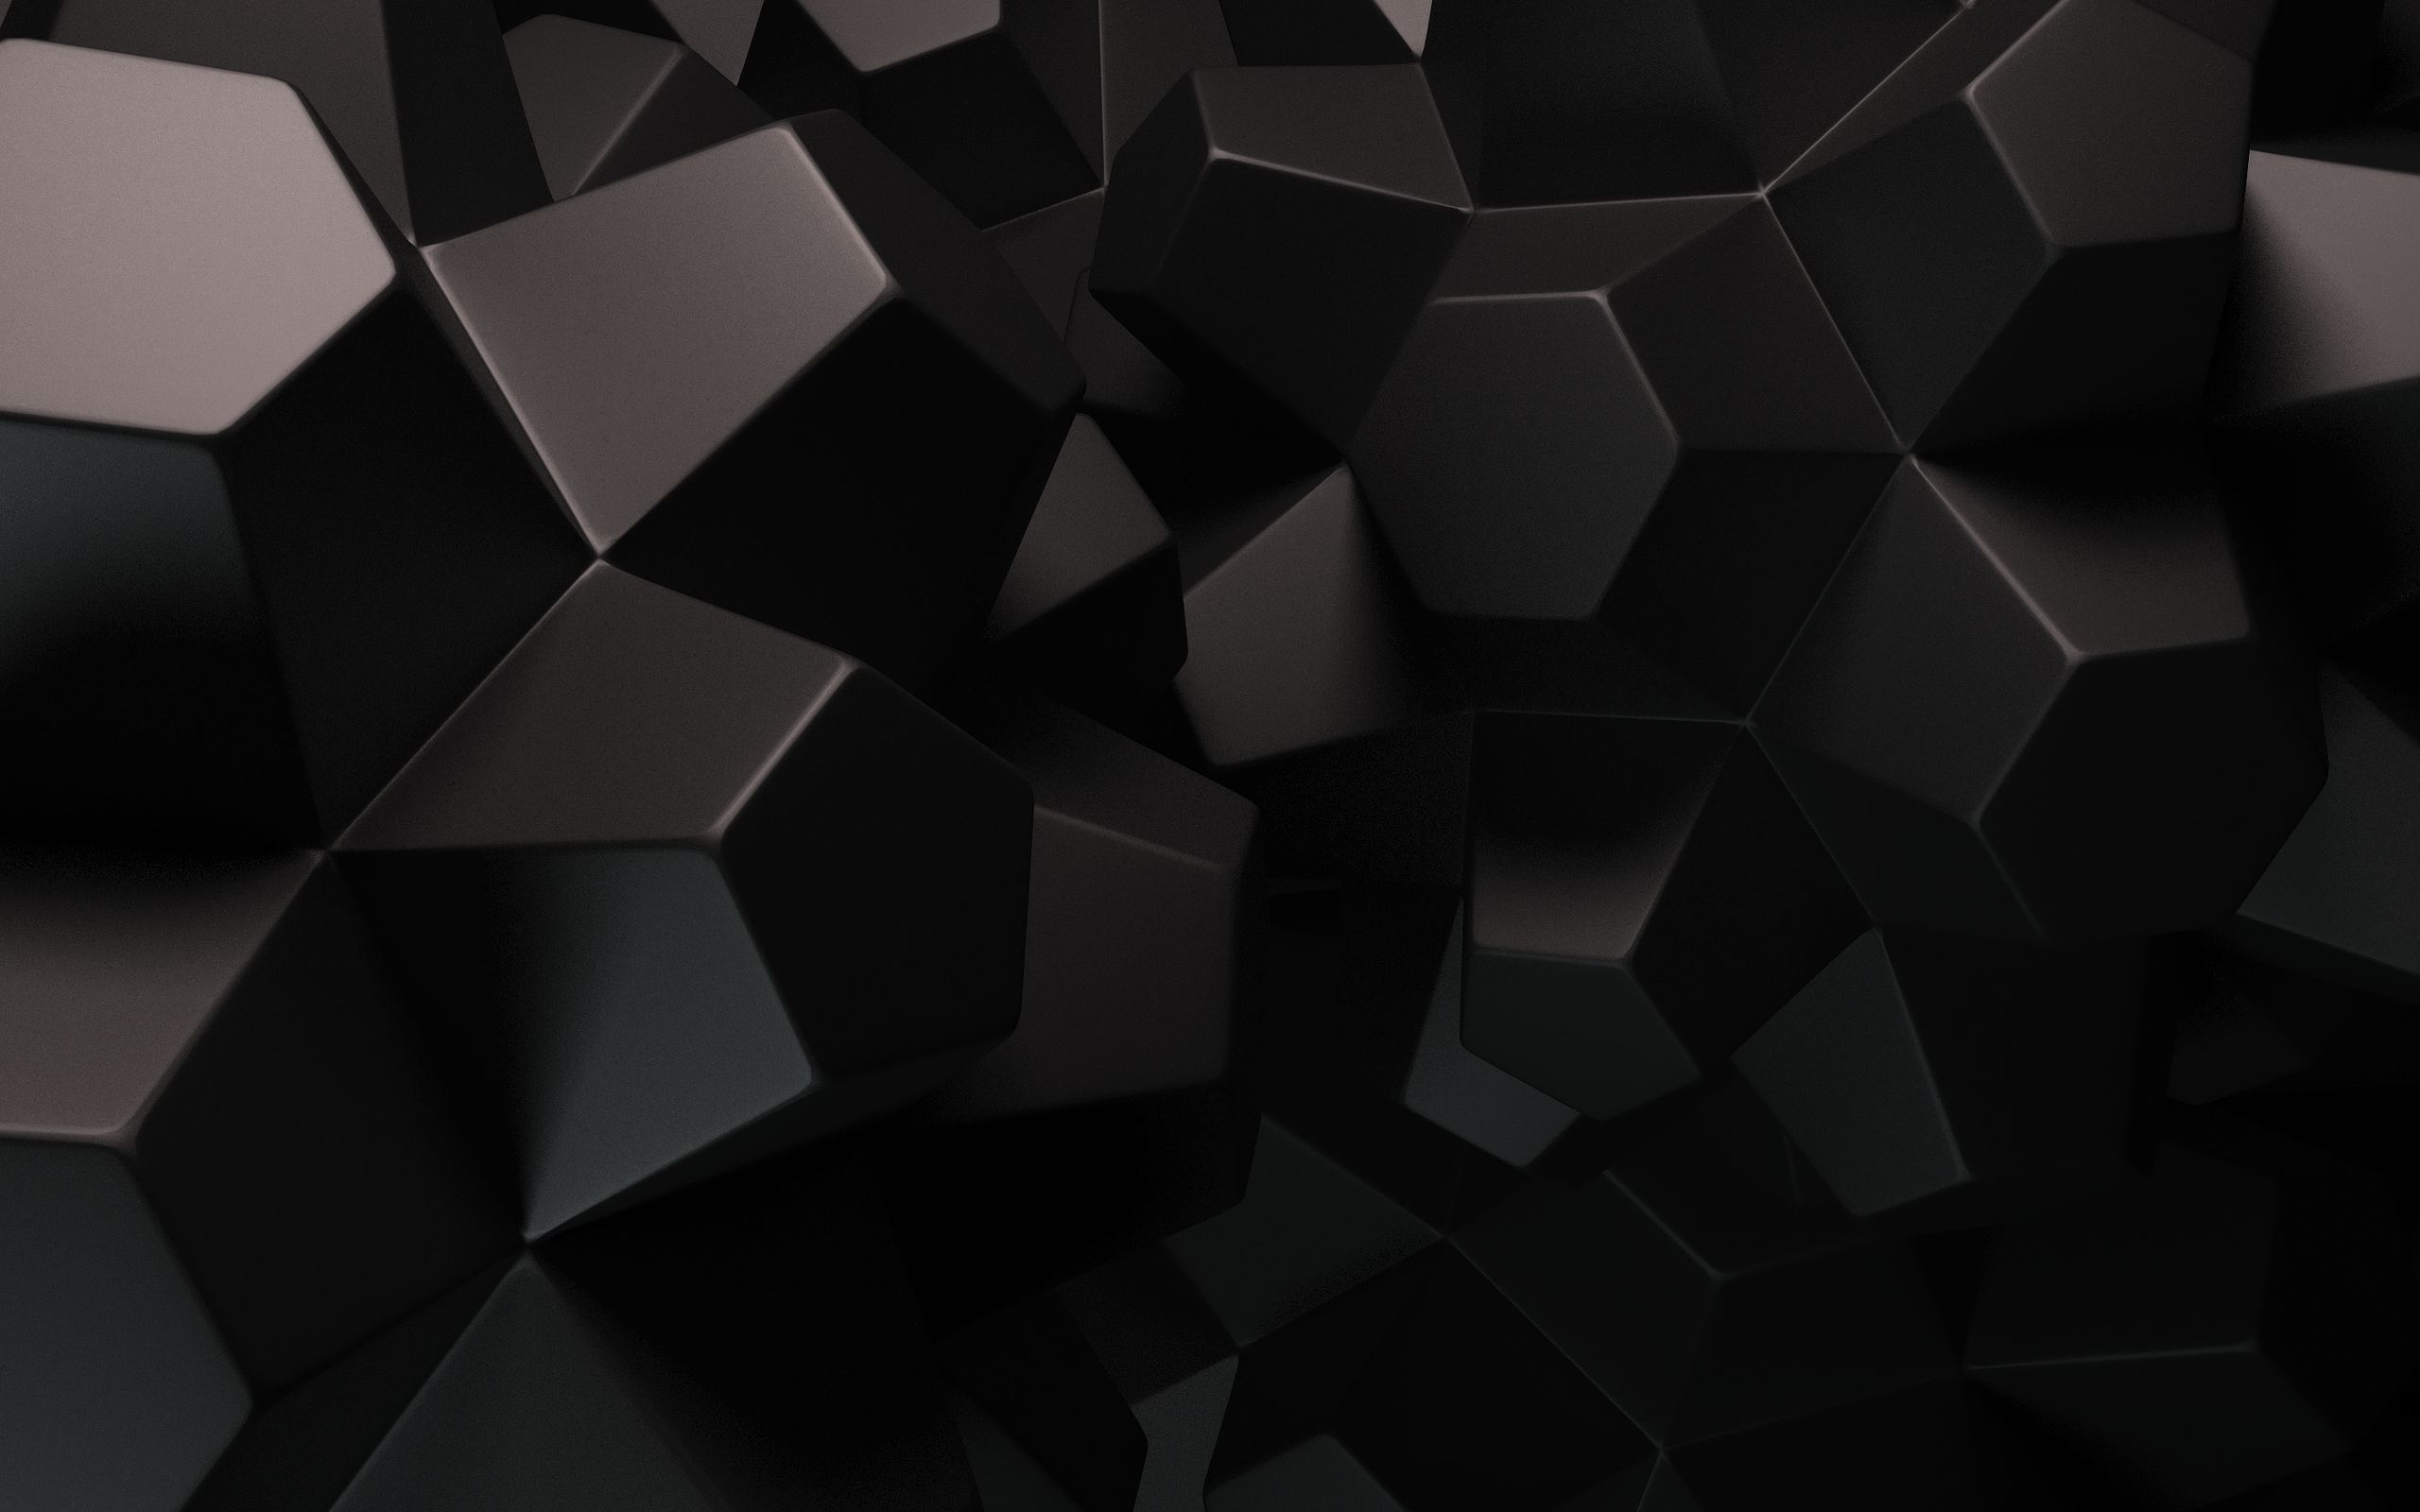 Free Geometric Mac Wallpapers, iMac Wallpapers, Retina